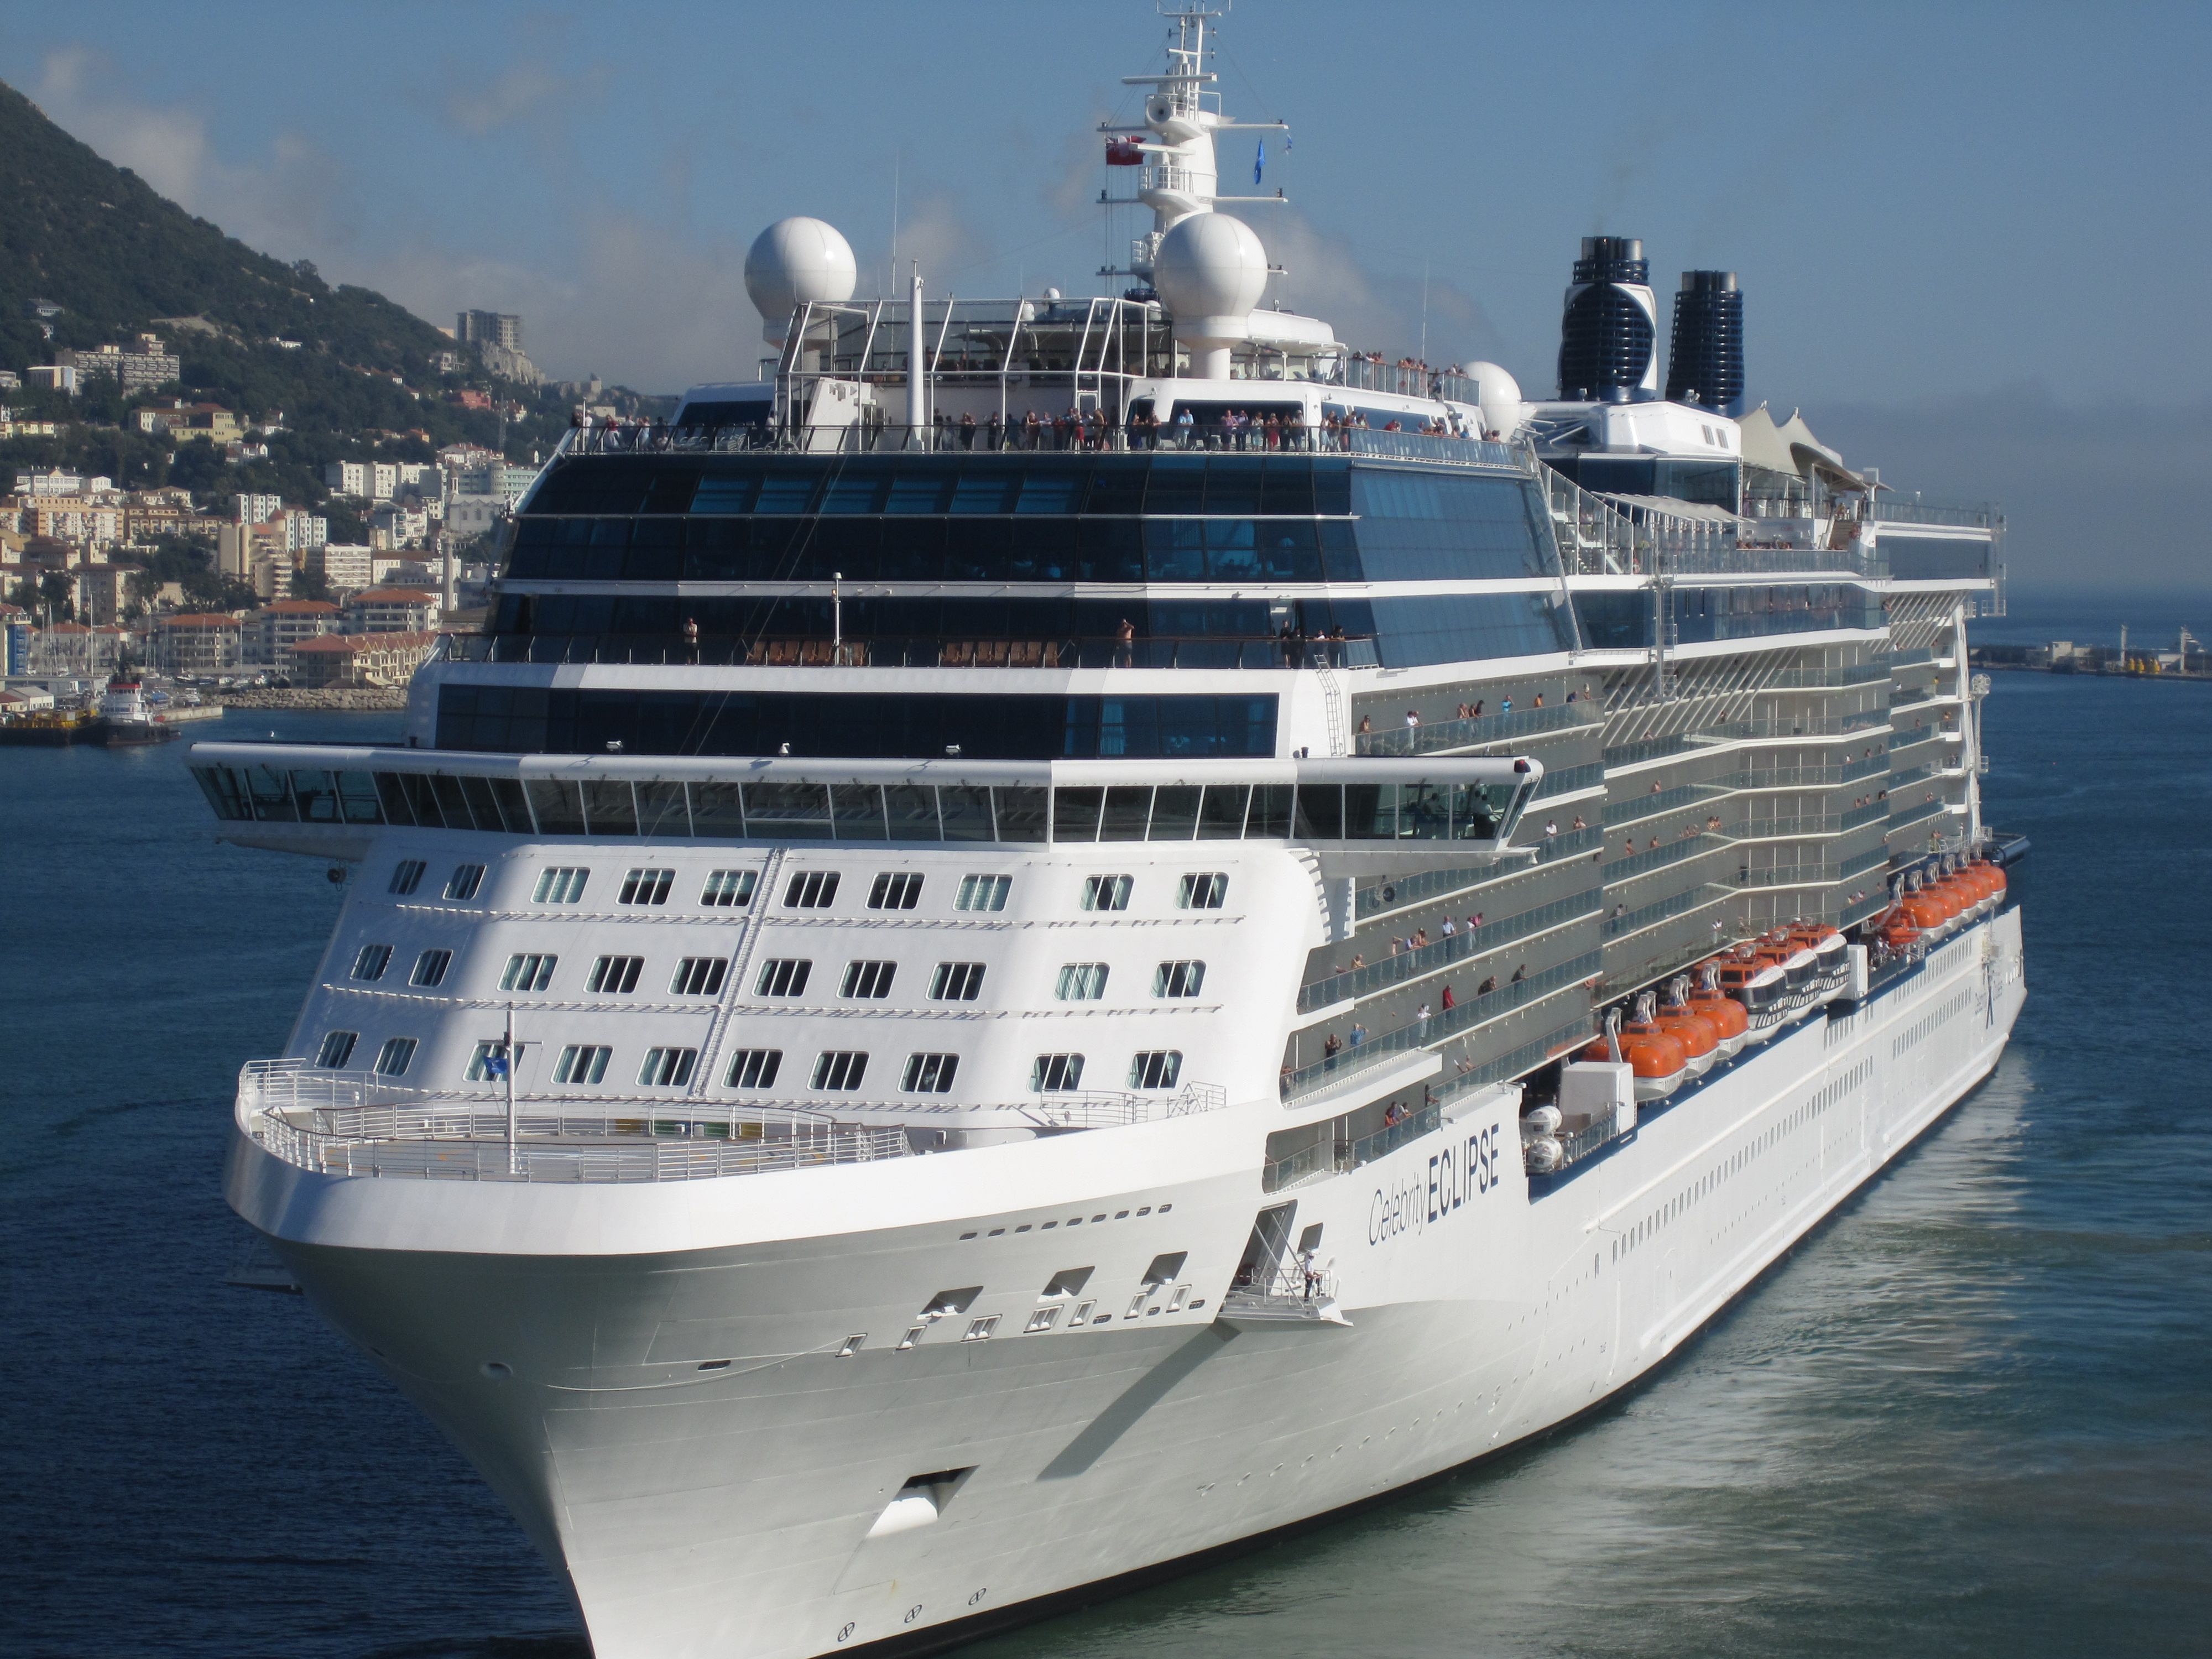 Celebrity Eclipse Cruise Ship - Interior Pictures